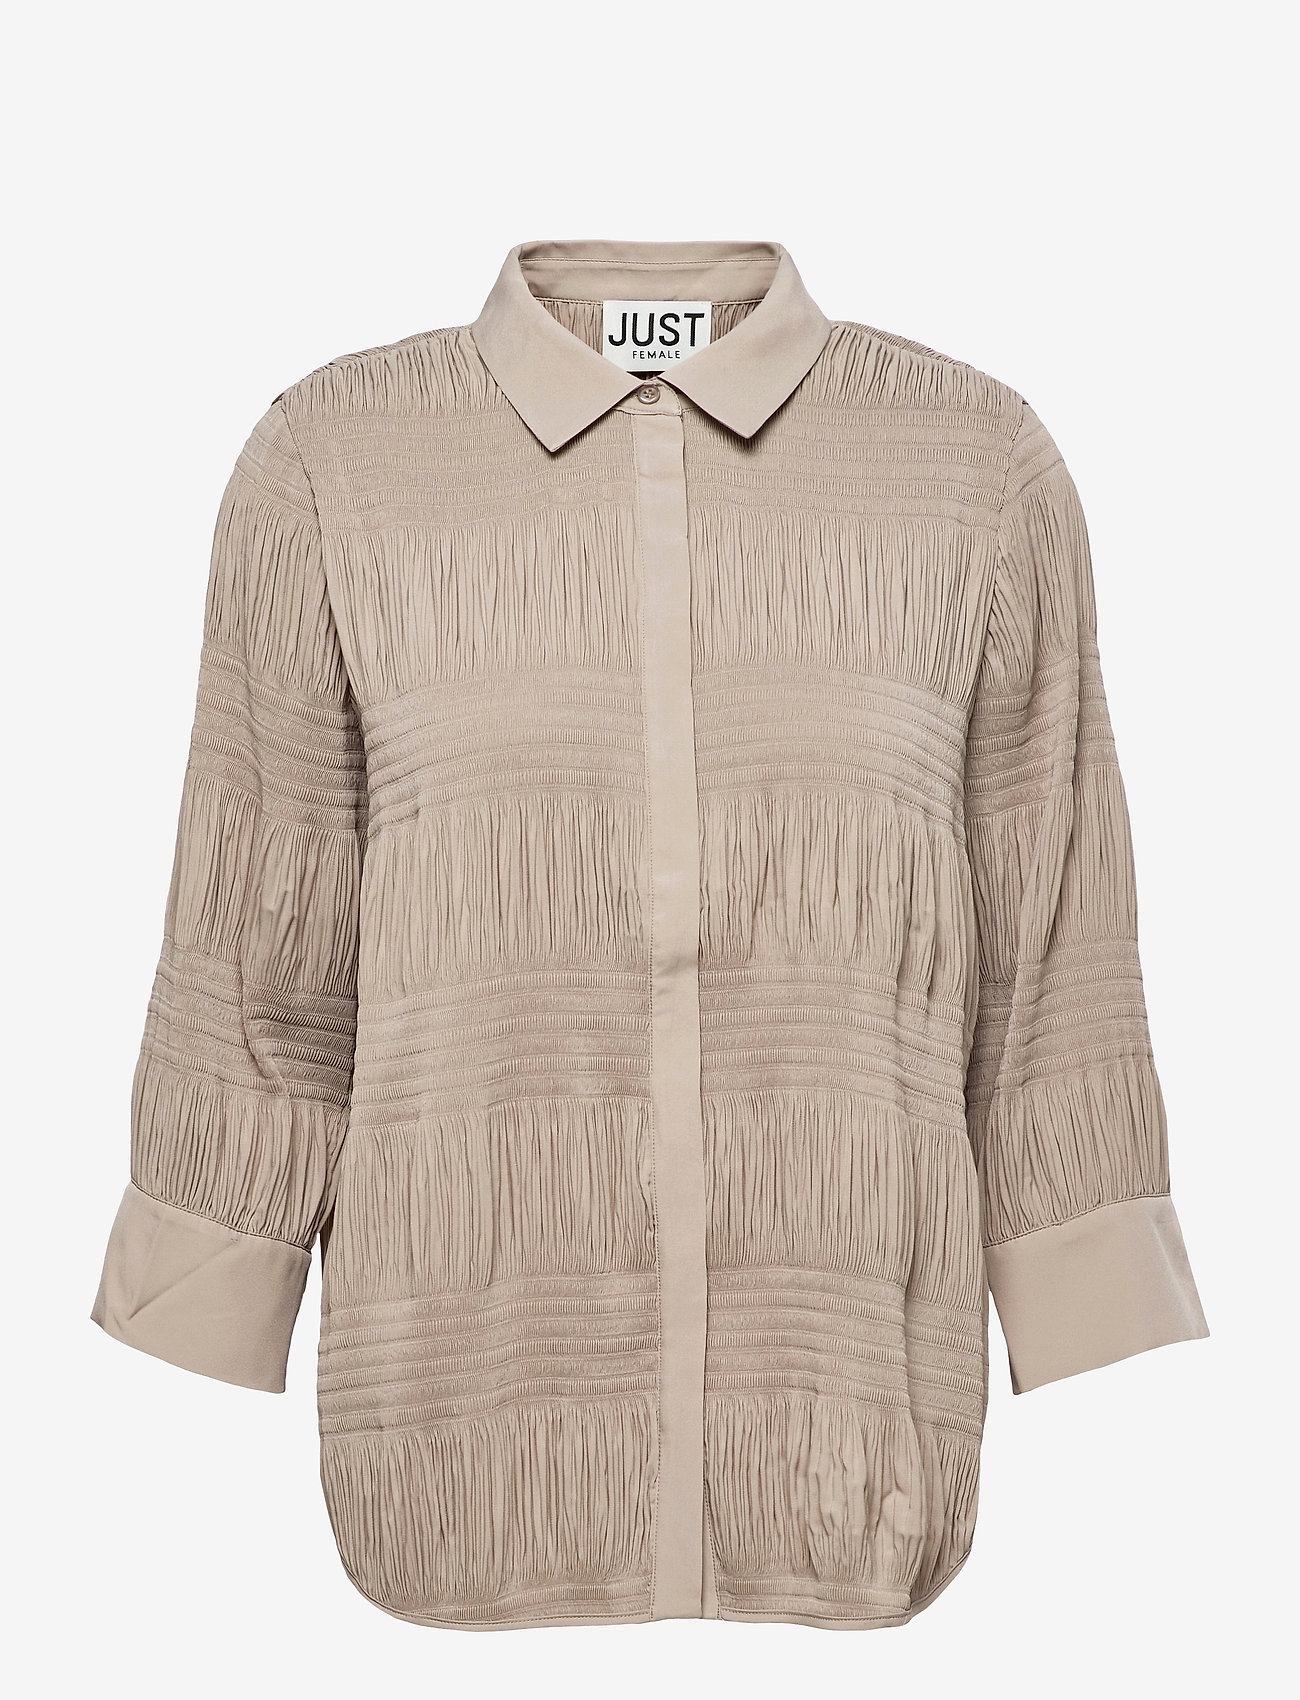 Just Female - Etienne shirt - long-sleeved shirts - cobblestone - 1